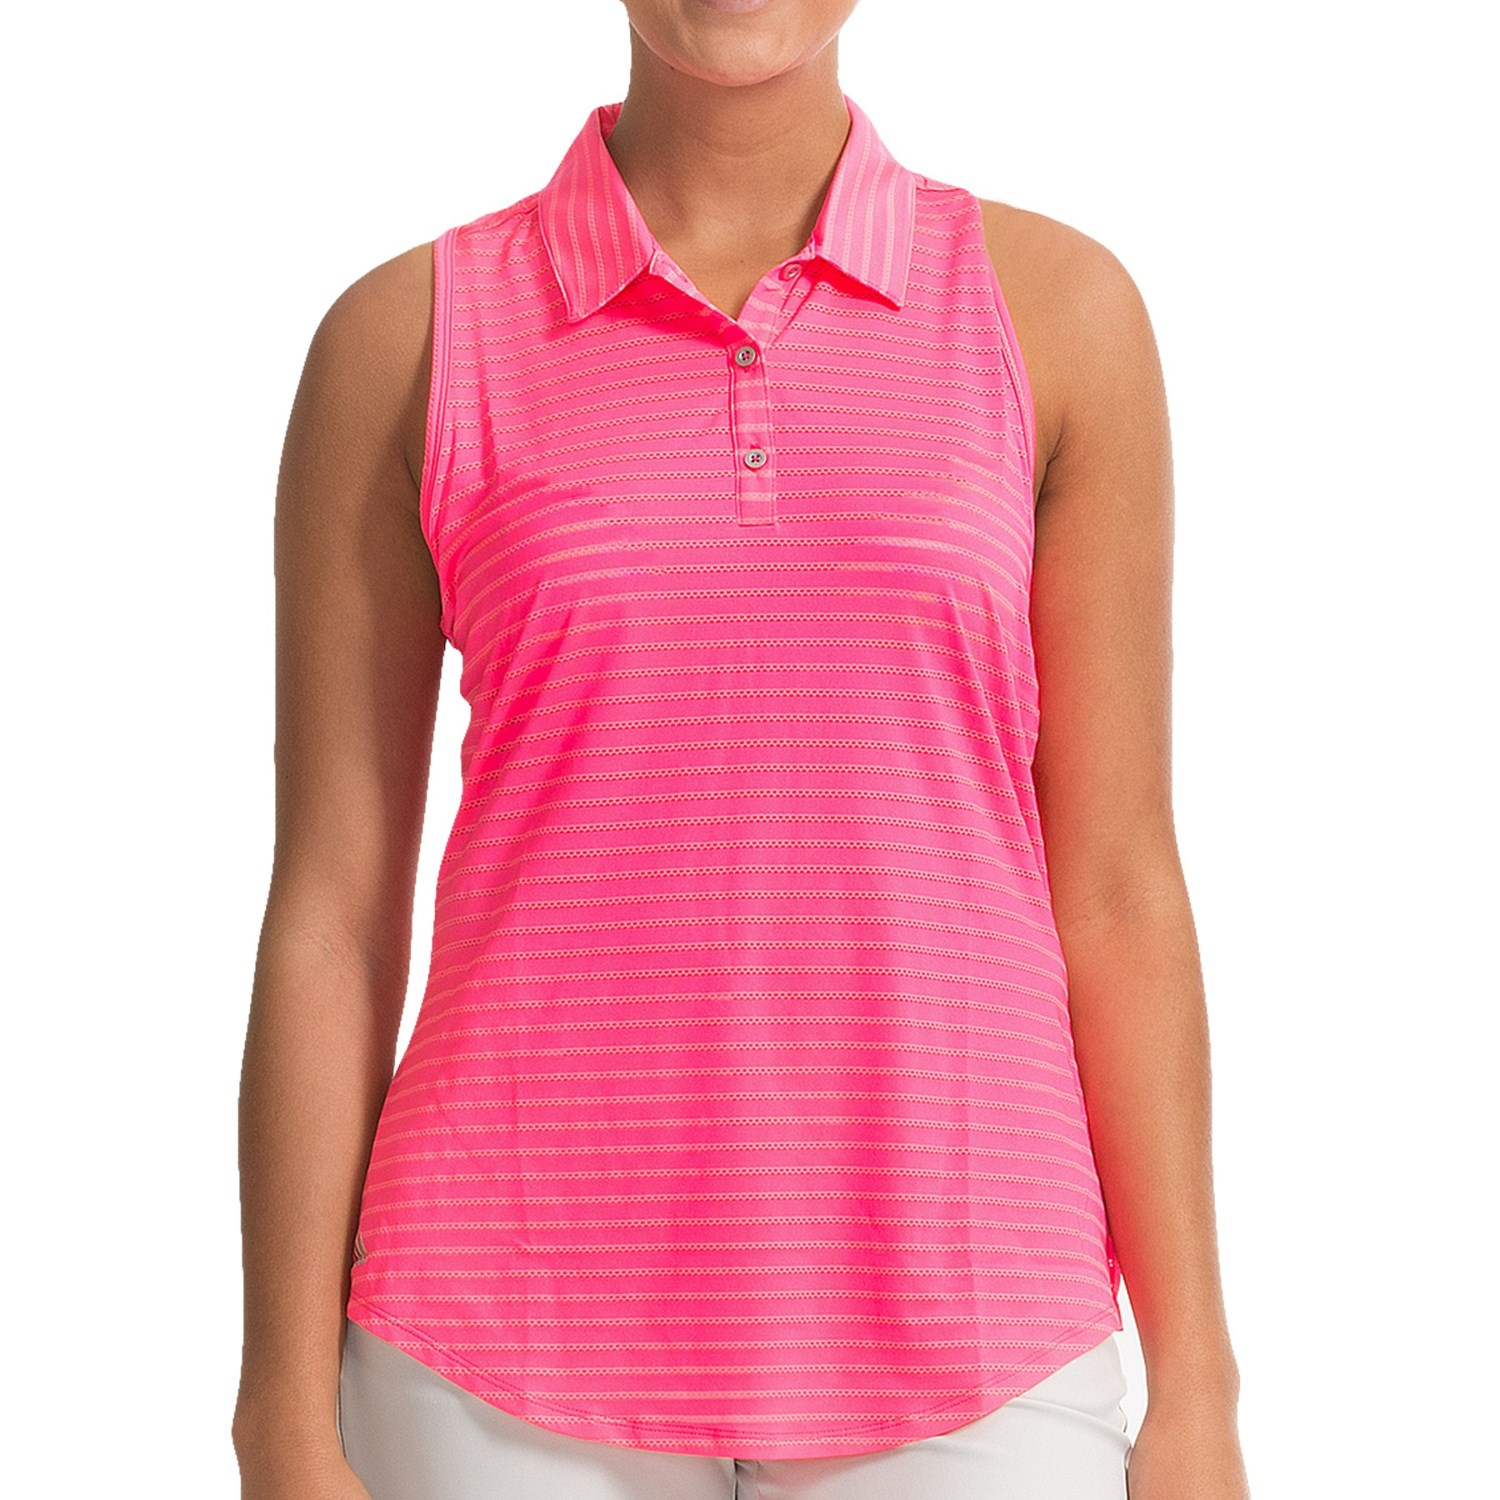 Adidas Climacool Ladies Golf Apparel  005a961d9c